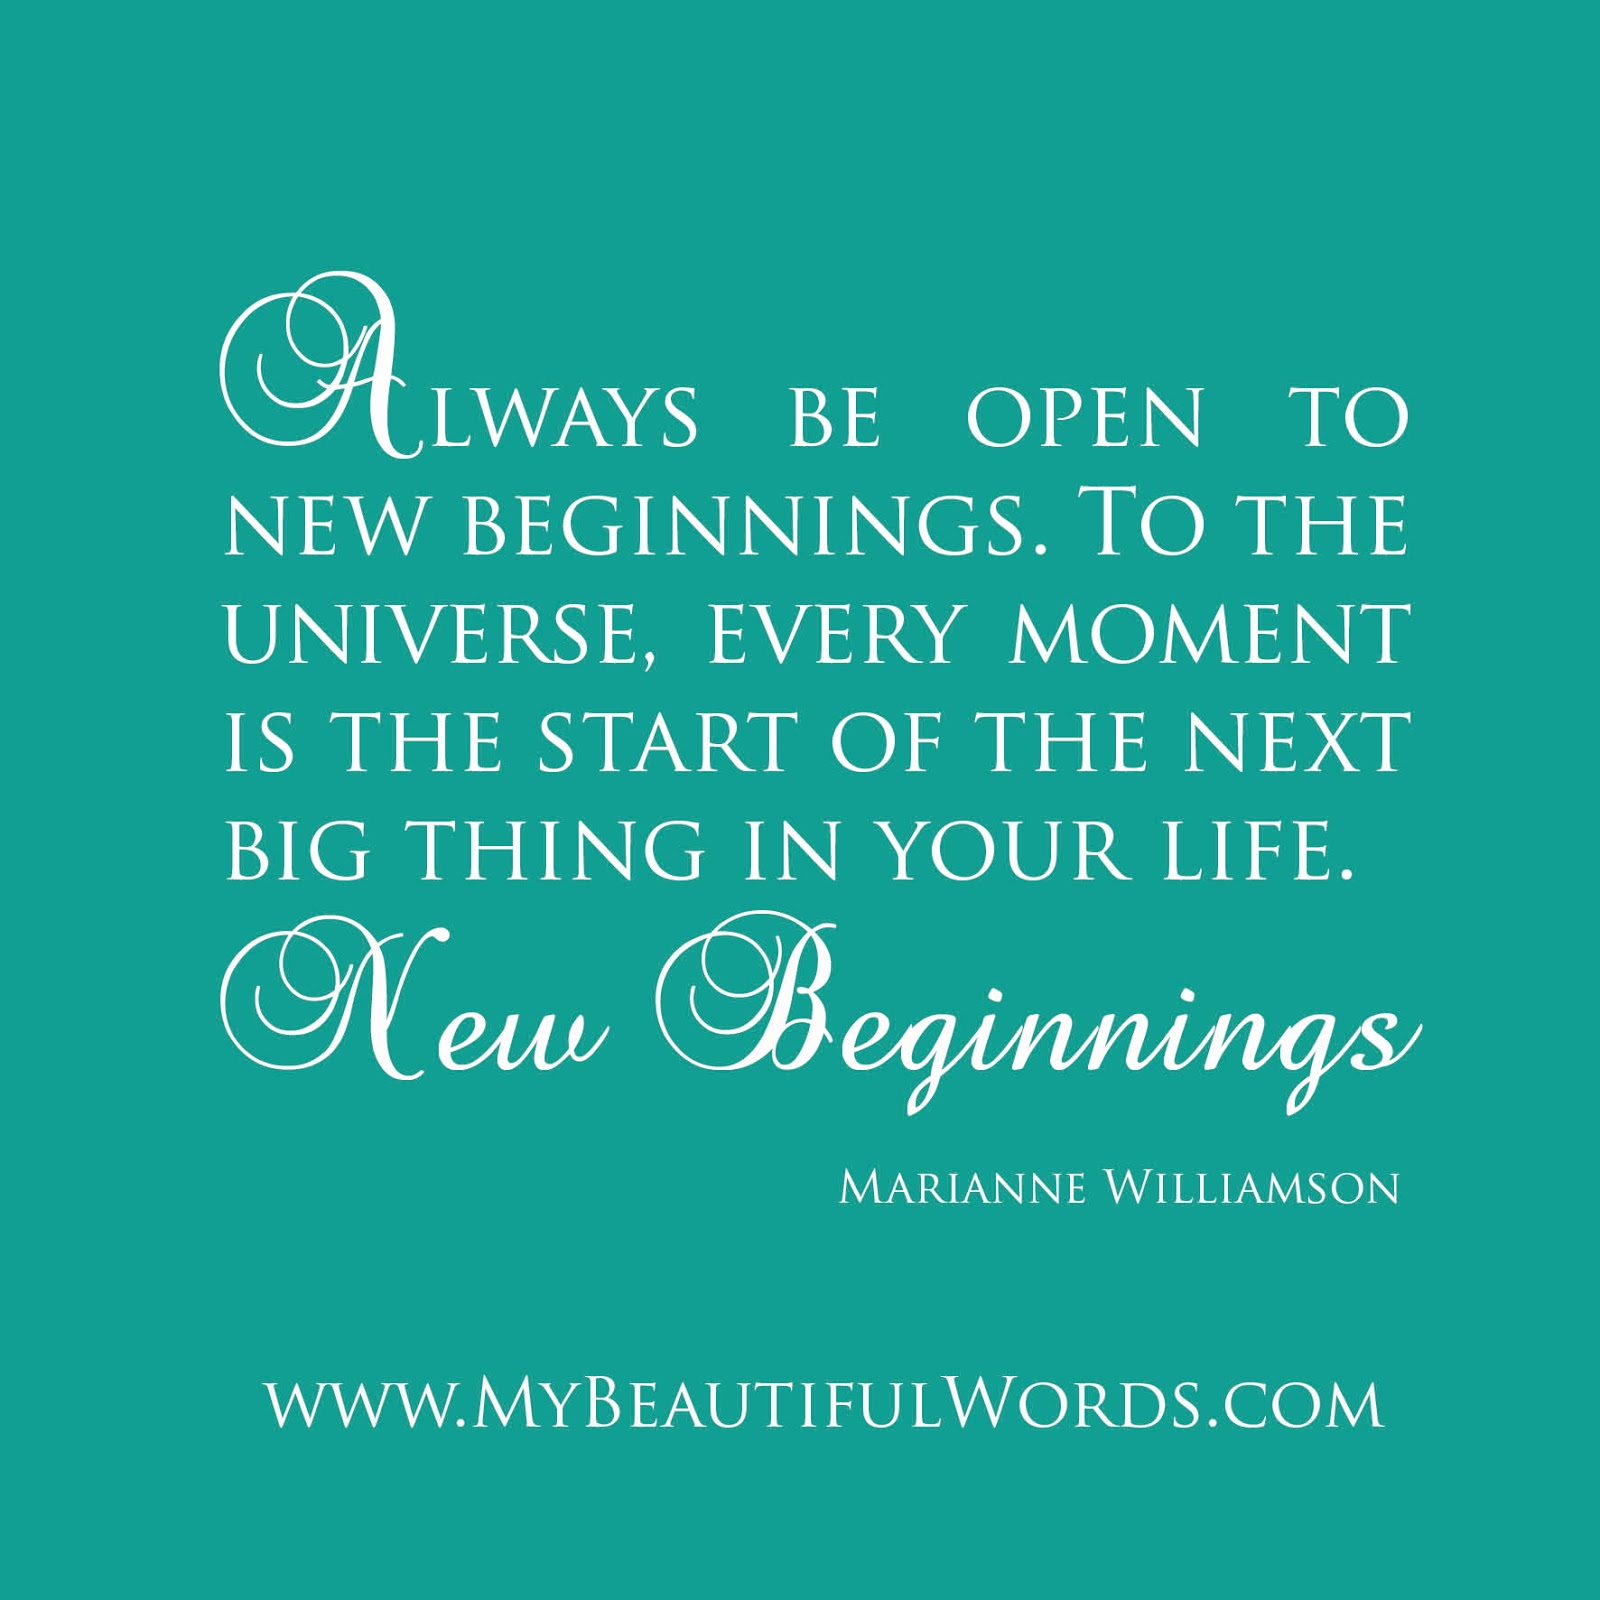 New Beginning Quotes Quotesgram: In Your Life New Beginnings Quotes. QuotesGram